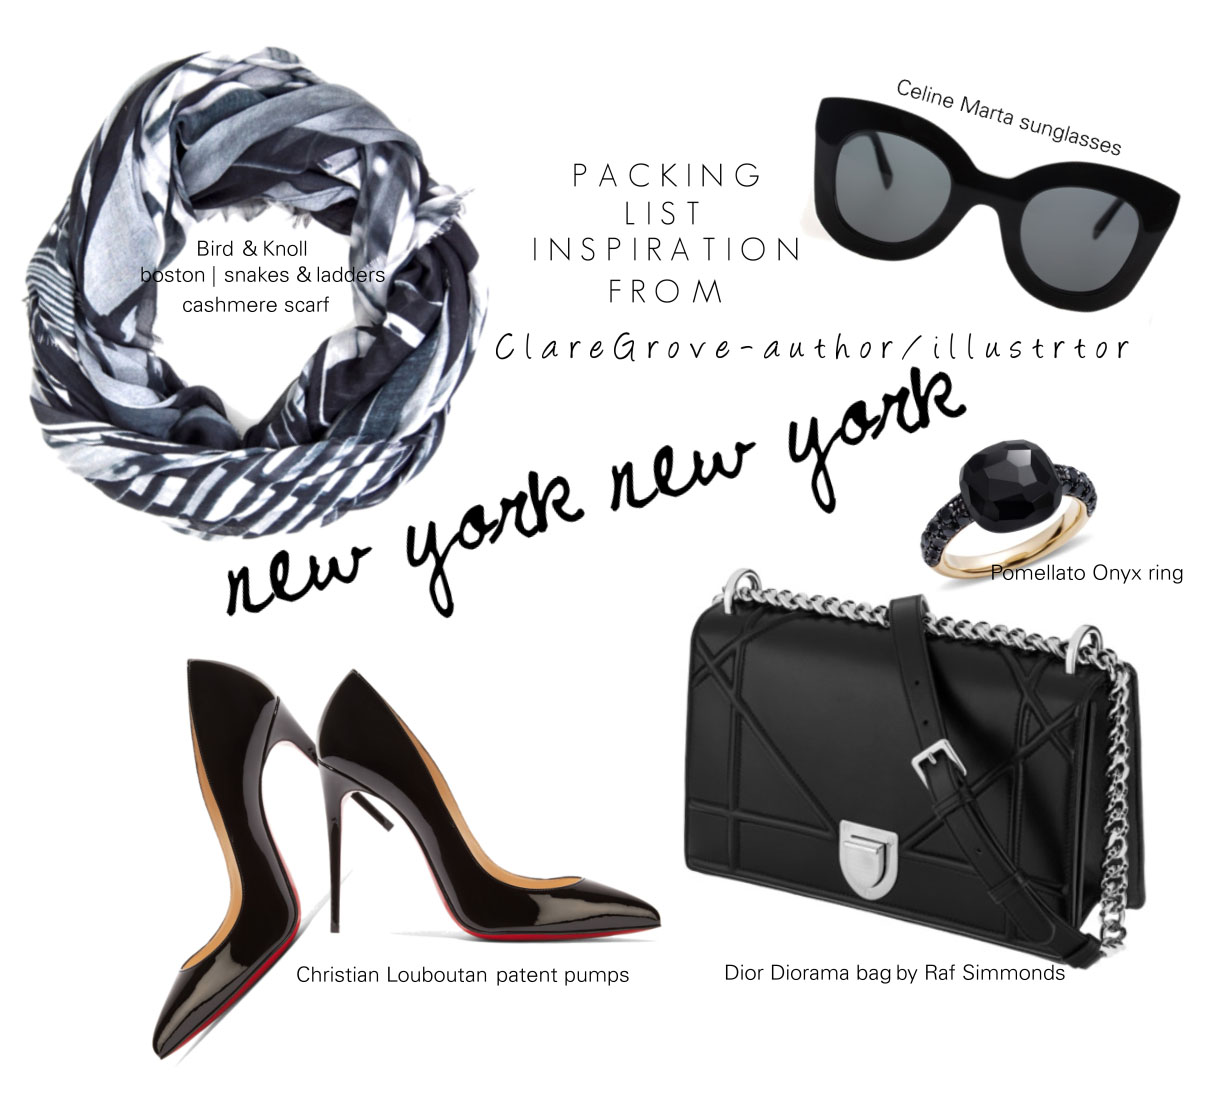 Packing inspiration for New York with fashion illustrator Clare Grove